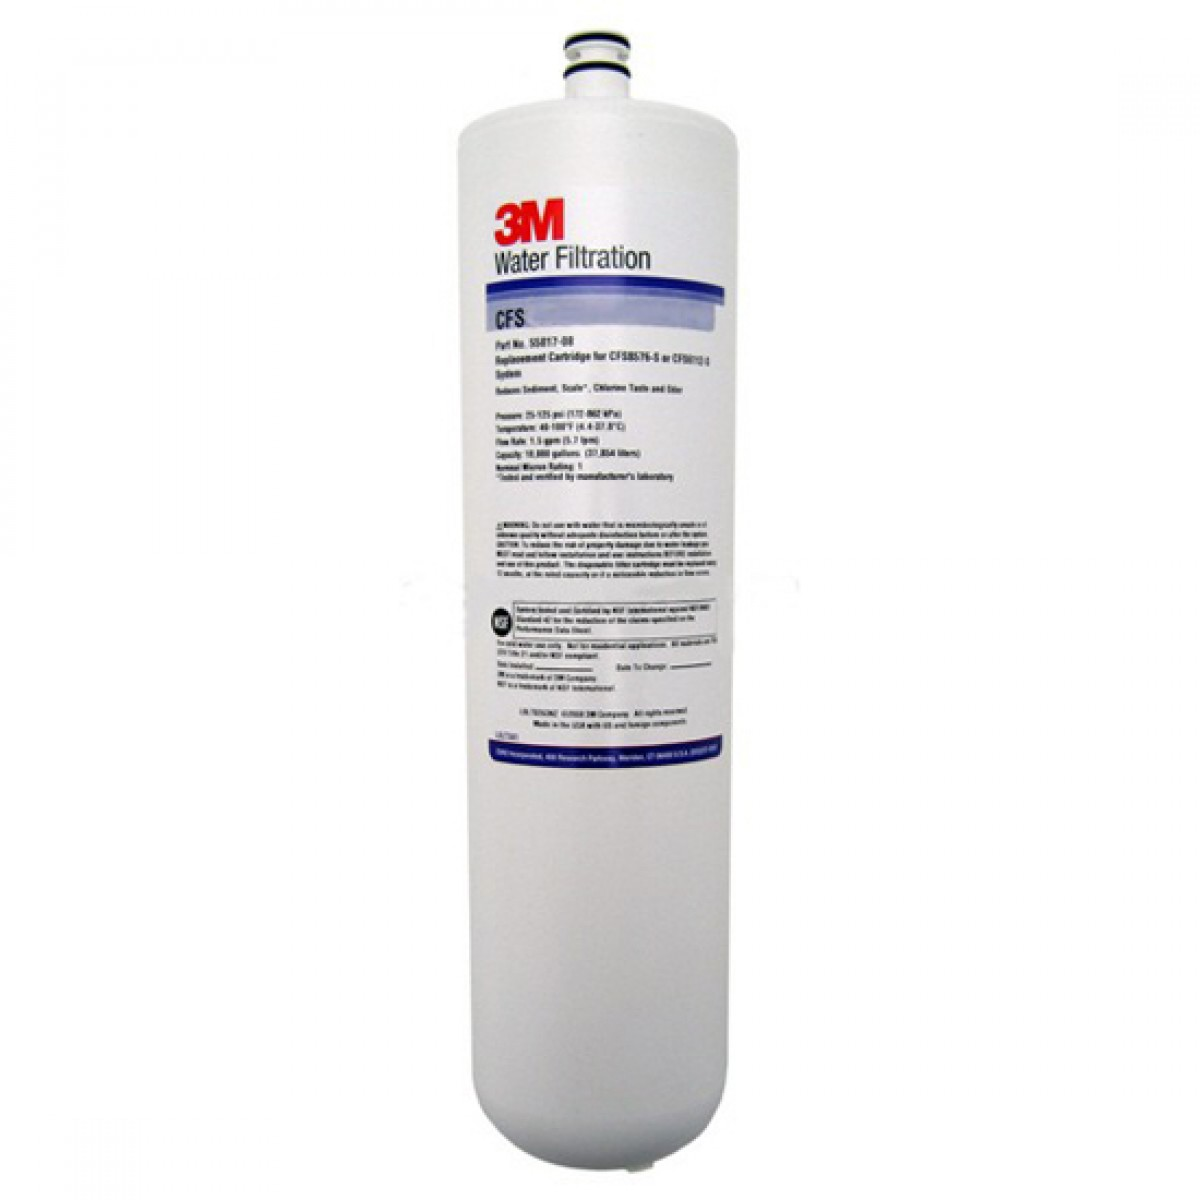 3m Cfs8112 S Whole House Water Filter Cartridge